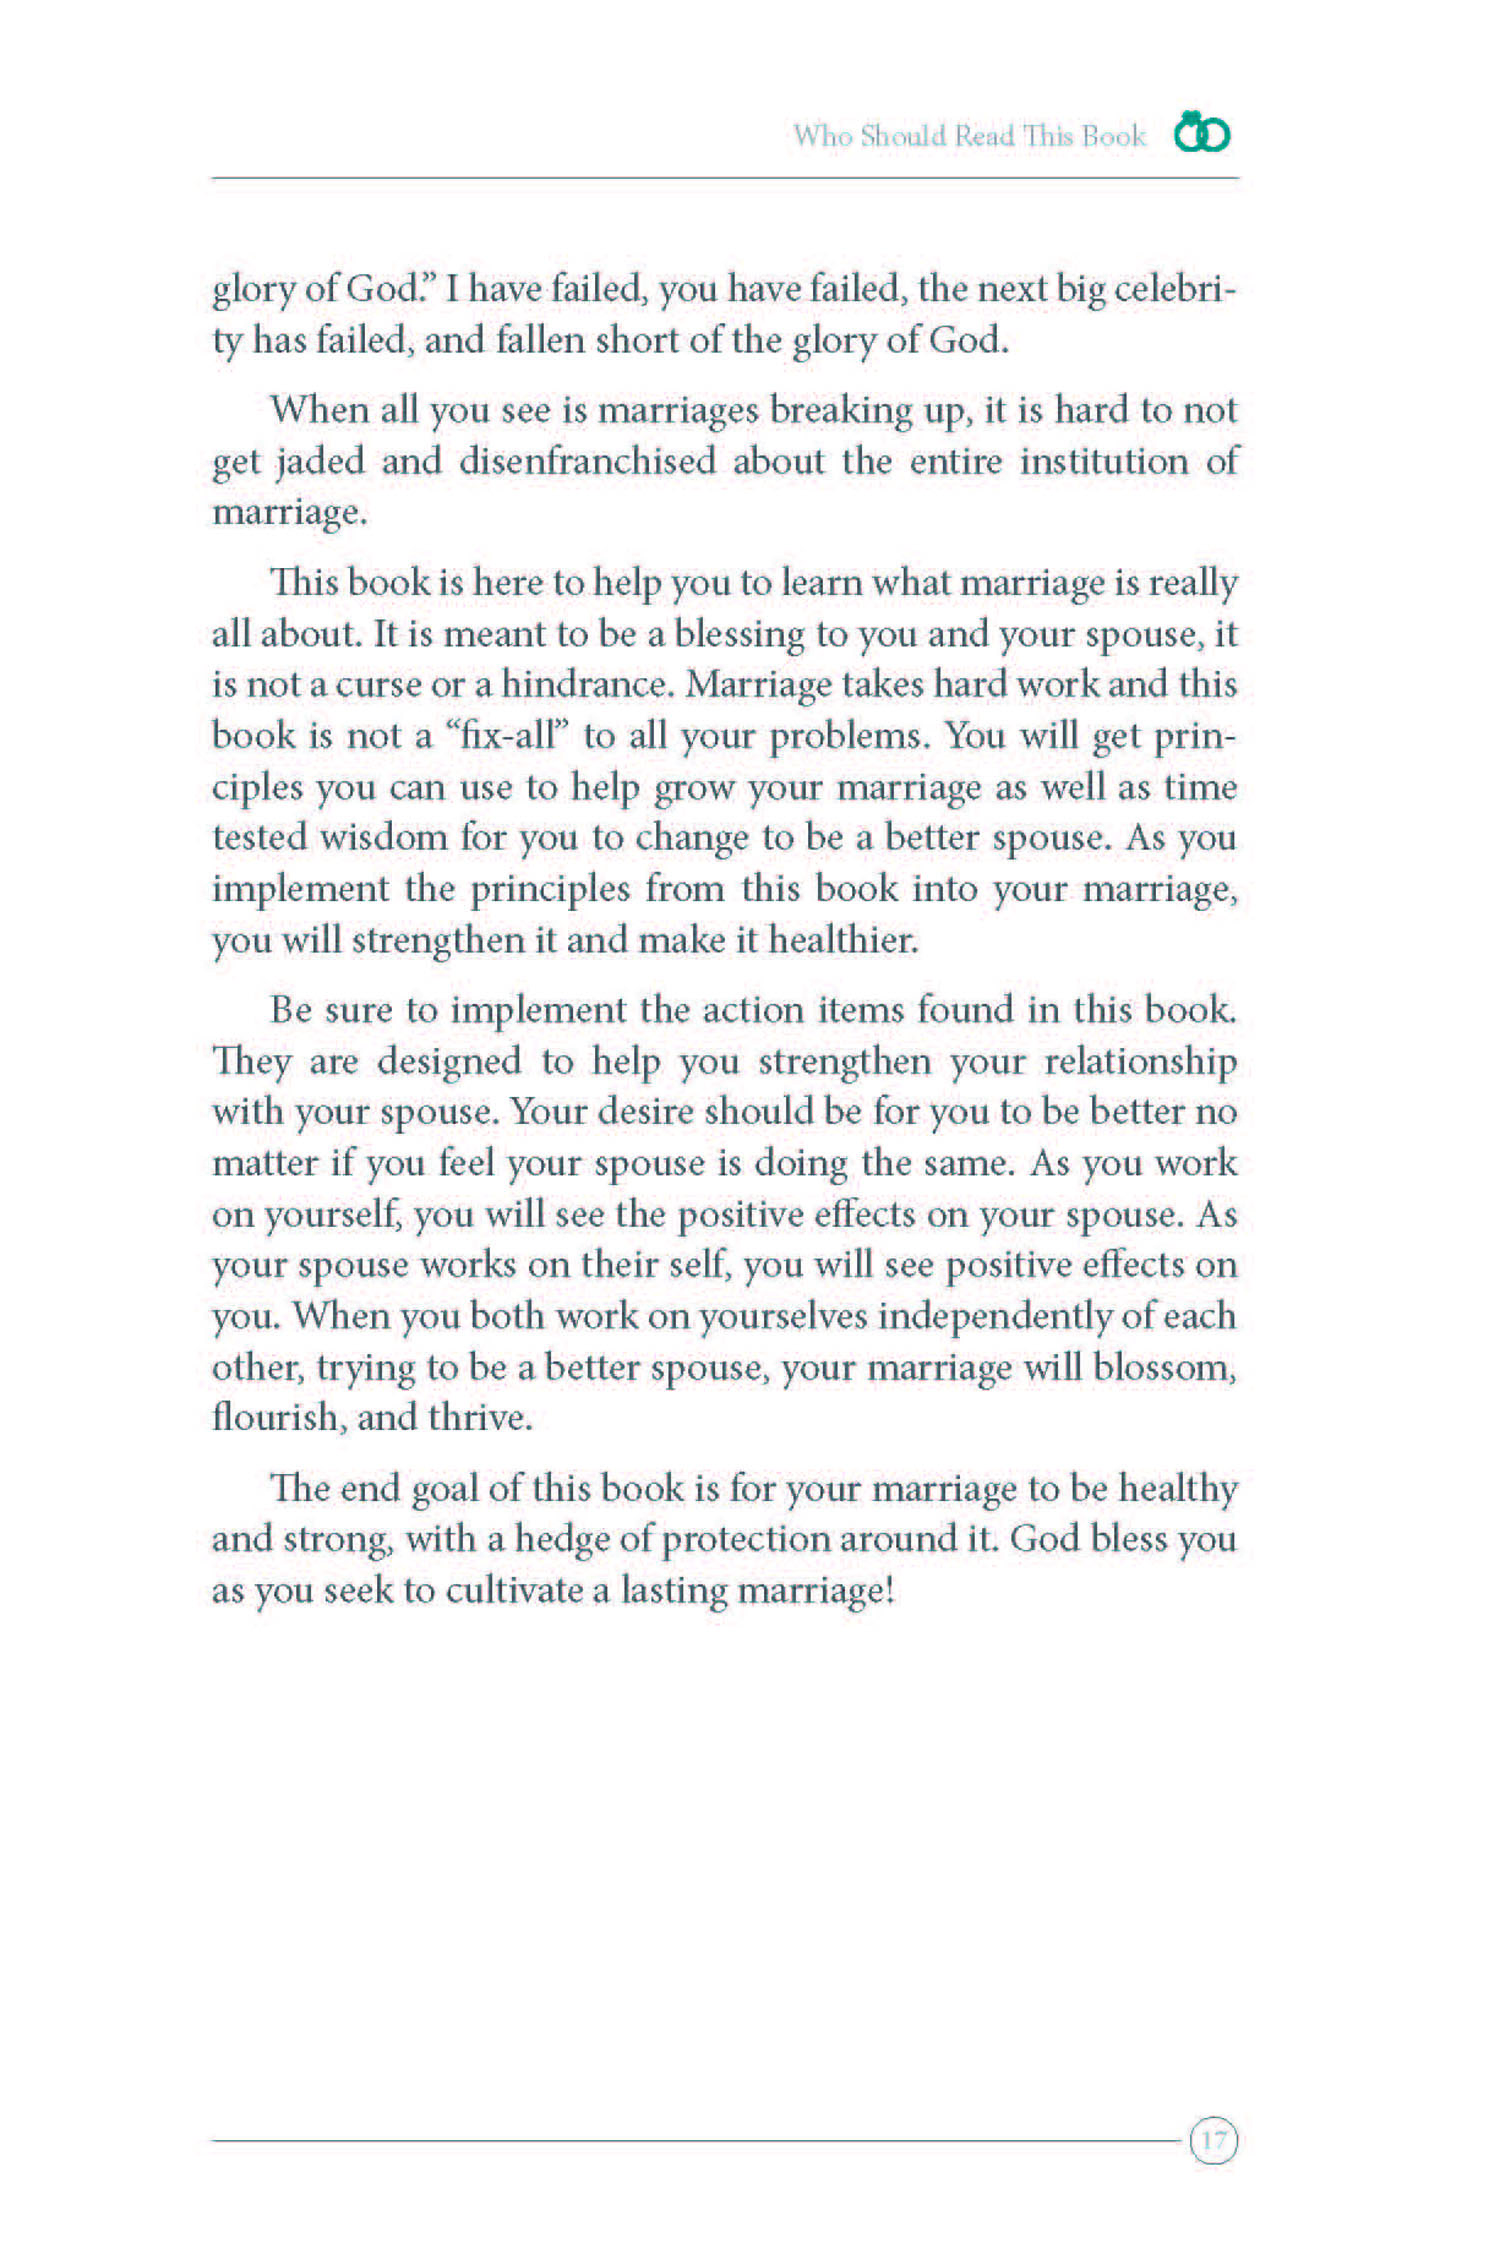 print_last_marriage_Page_017